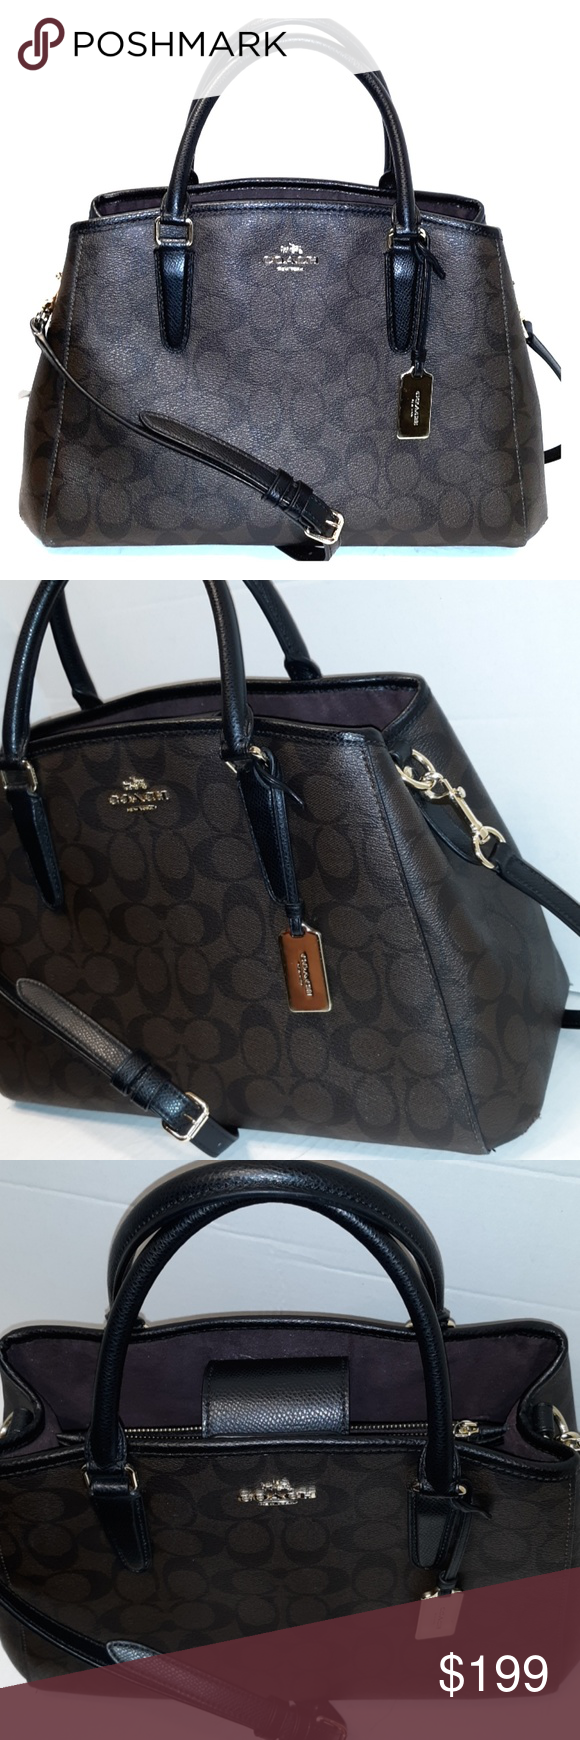 Like New Coach Signature Margot Carryall Satchel 100% Authentic Style   55932 Like new  b7e52d6a37